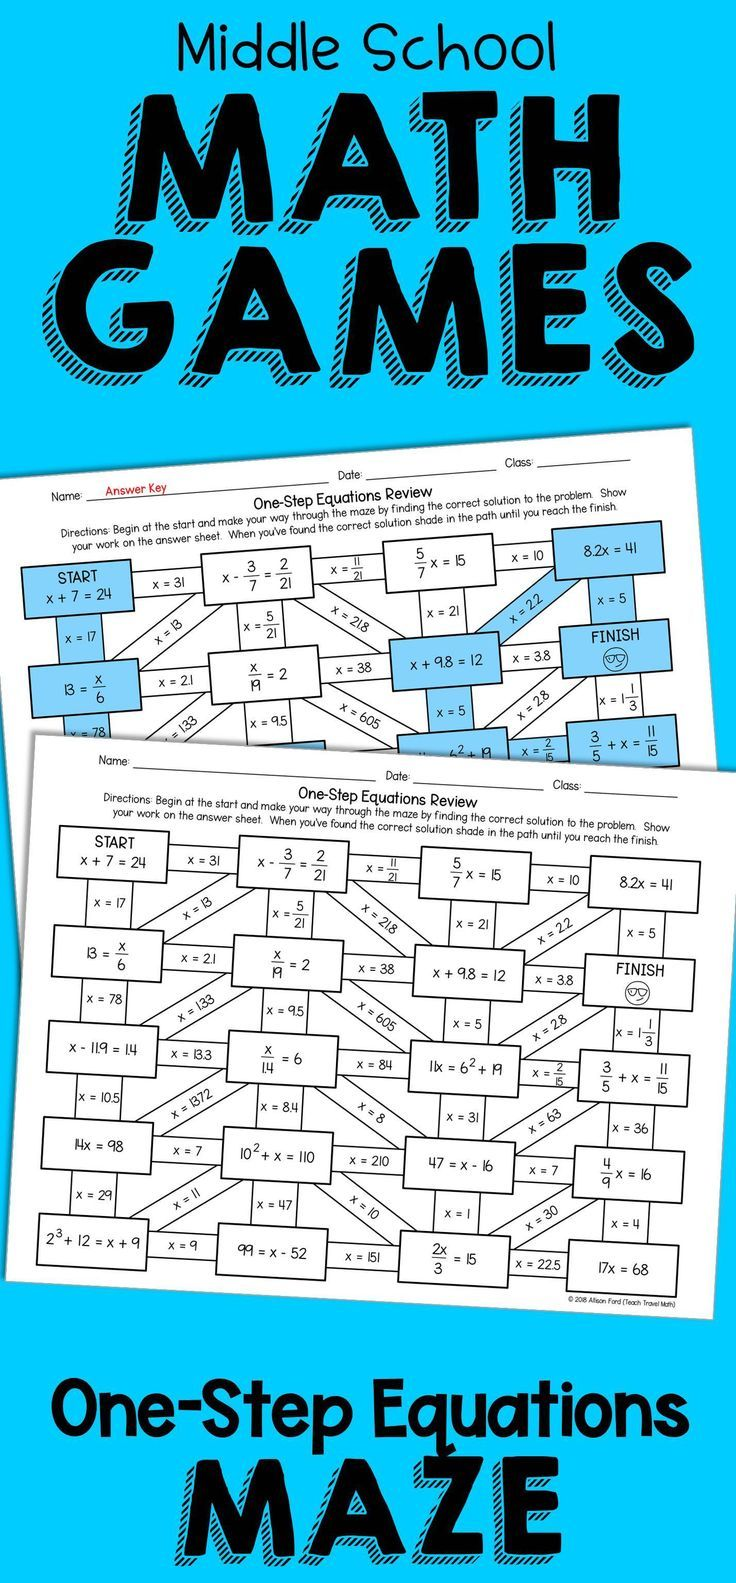 OneStep Equations Maze Math games middle school, One